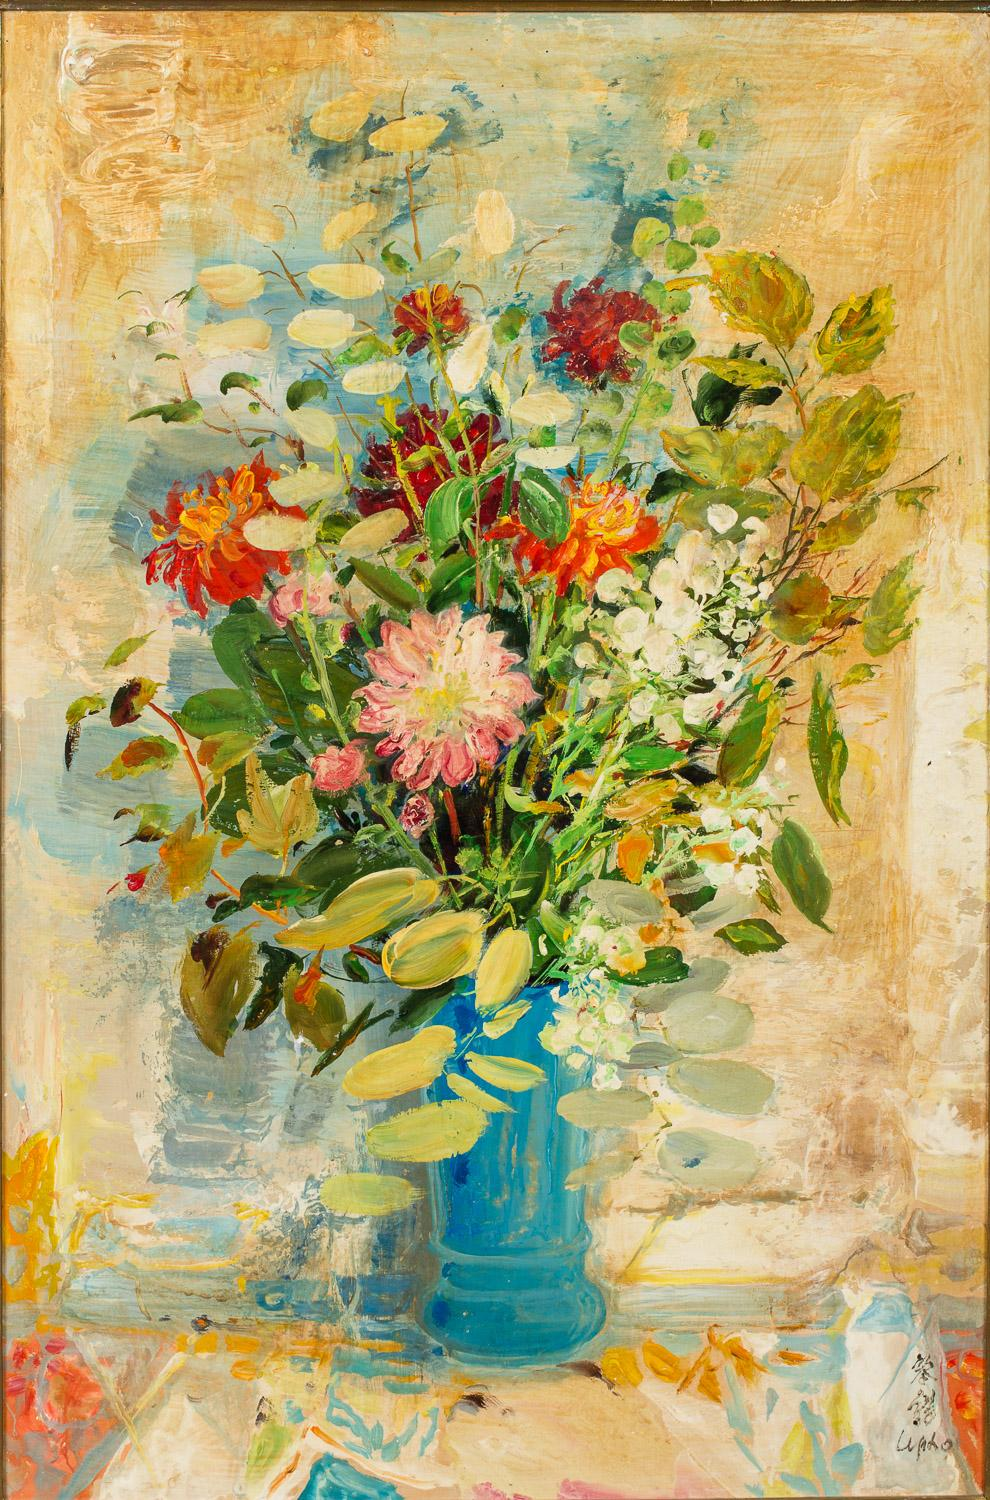 Le Pho (Vietnamese/French, 1907-2001), Le Vase Bleu, Oil on Silk Laid Down on Board